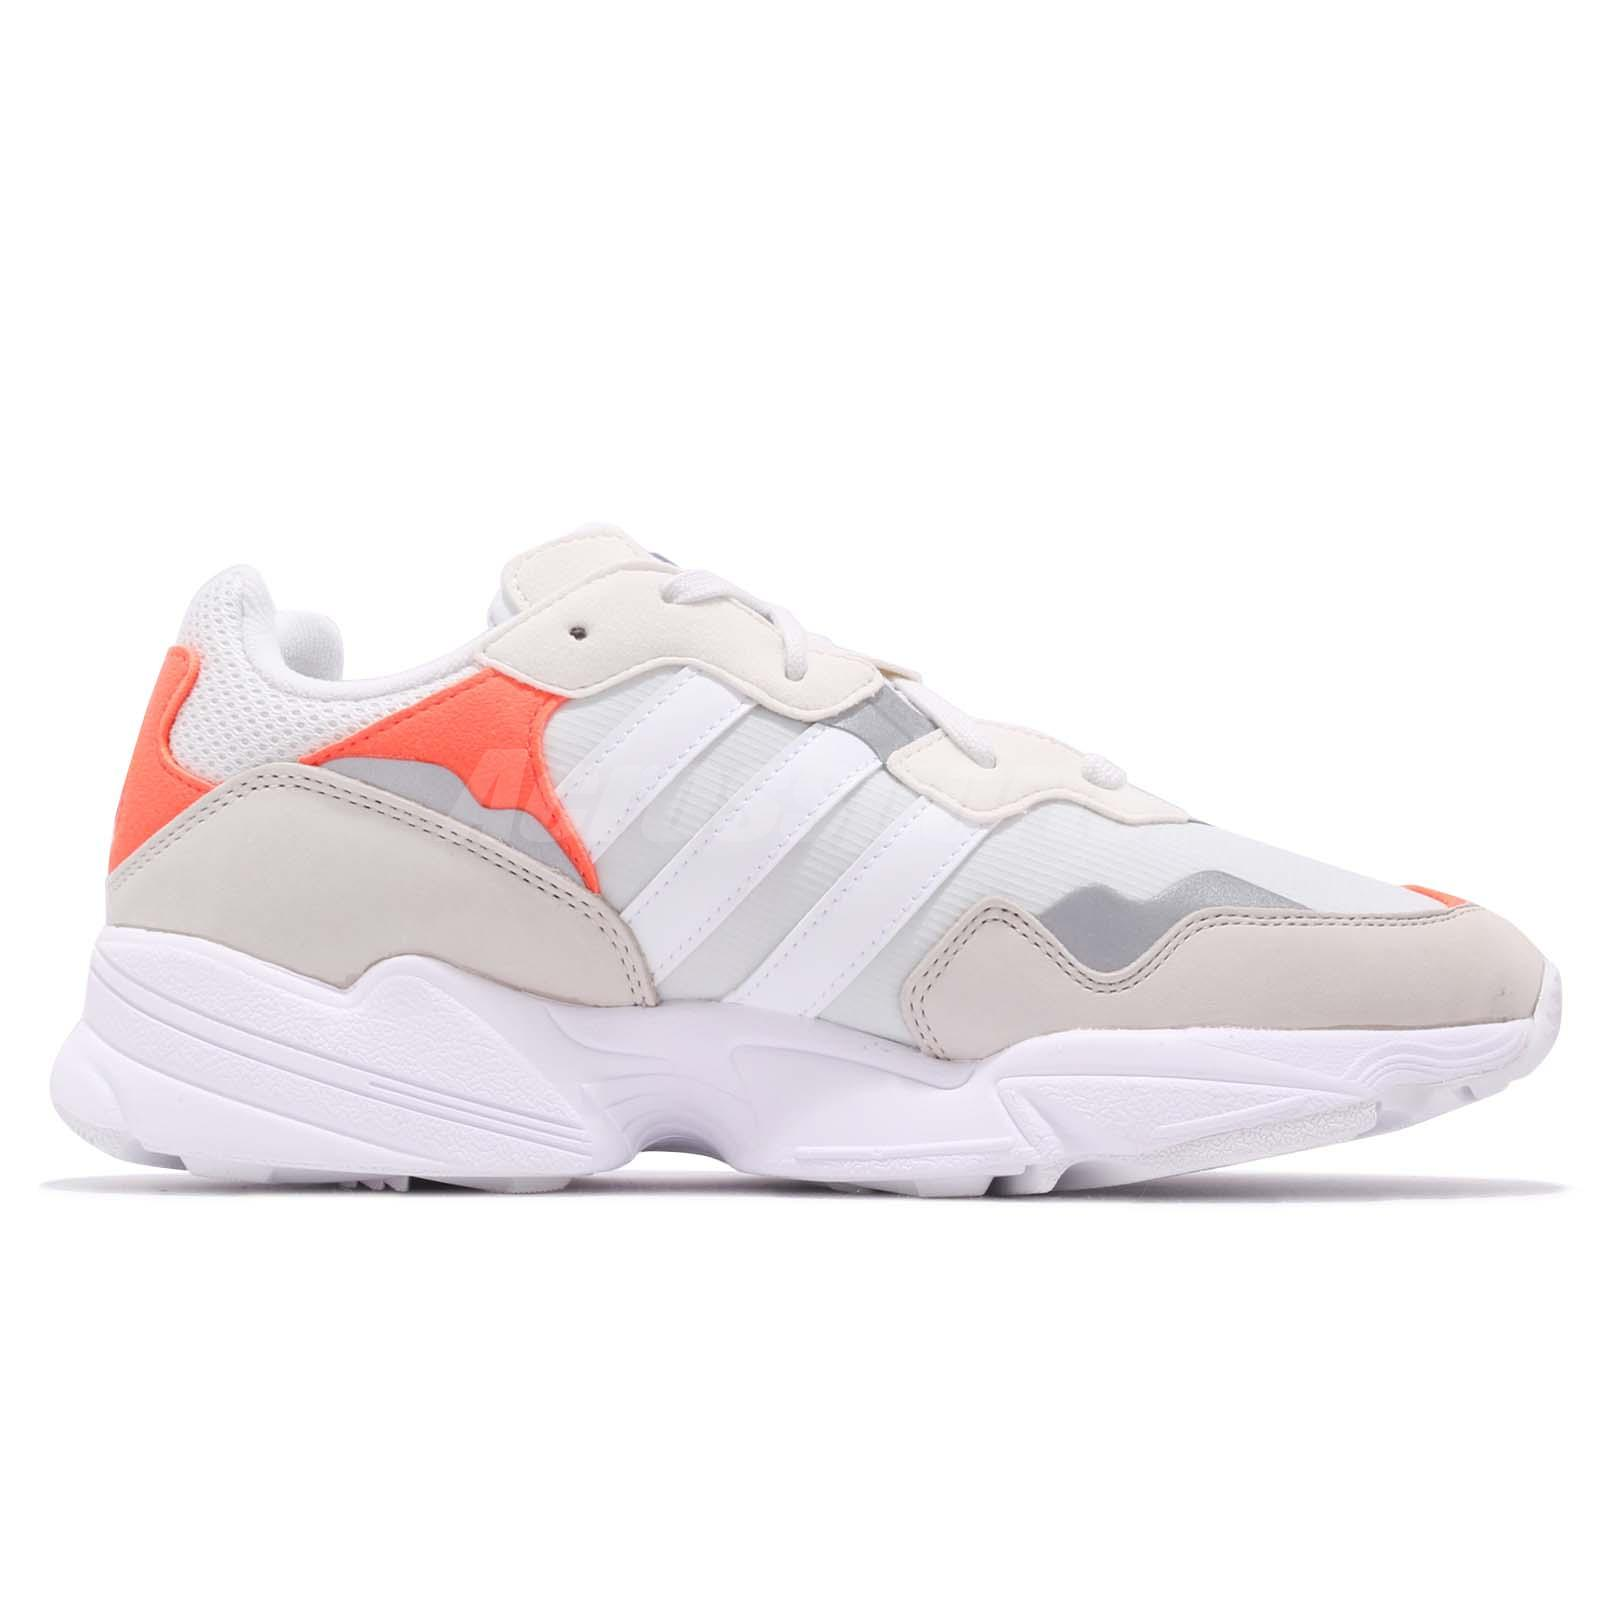 Details about adidas Originals Yung 96 White Orange Men Running Daddy Shoes Sneakers F97179